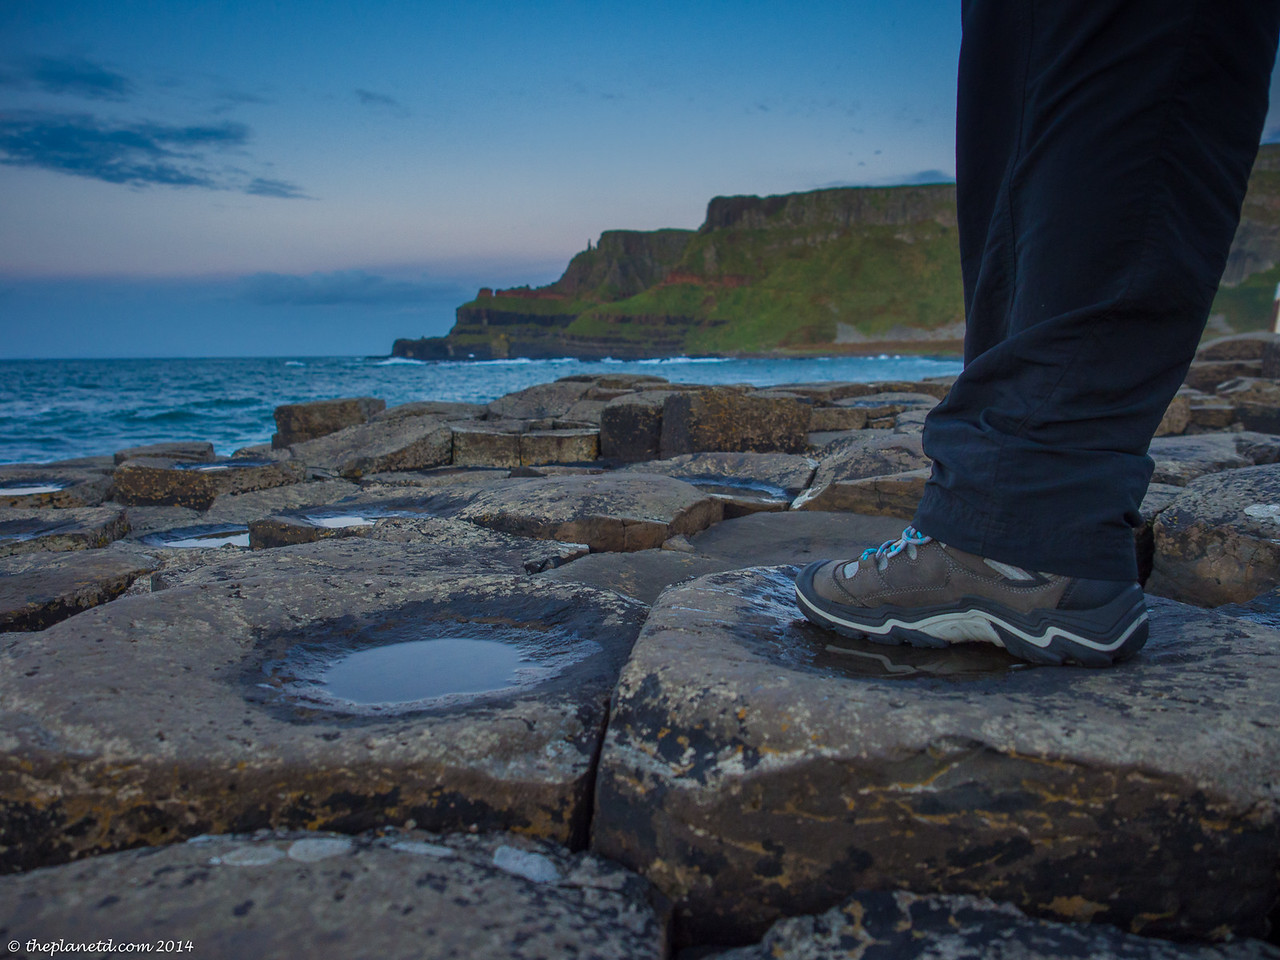 Deb's Keens take on the Giant's Causeway in Ireland